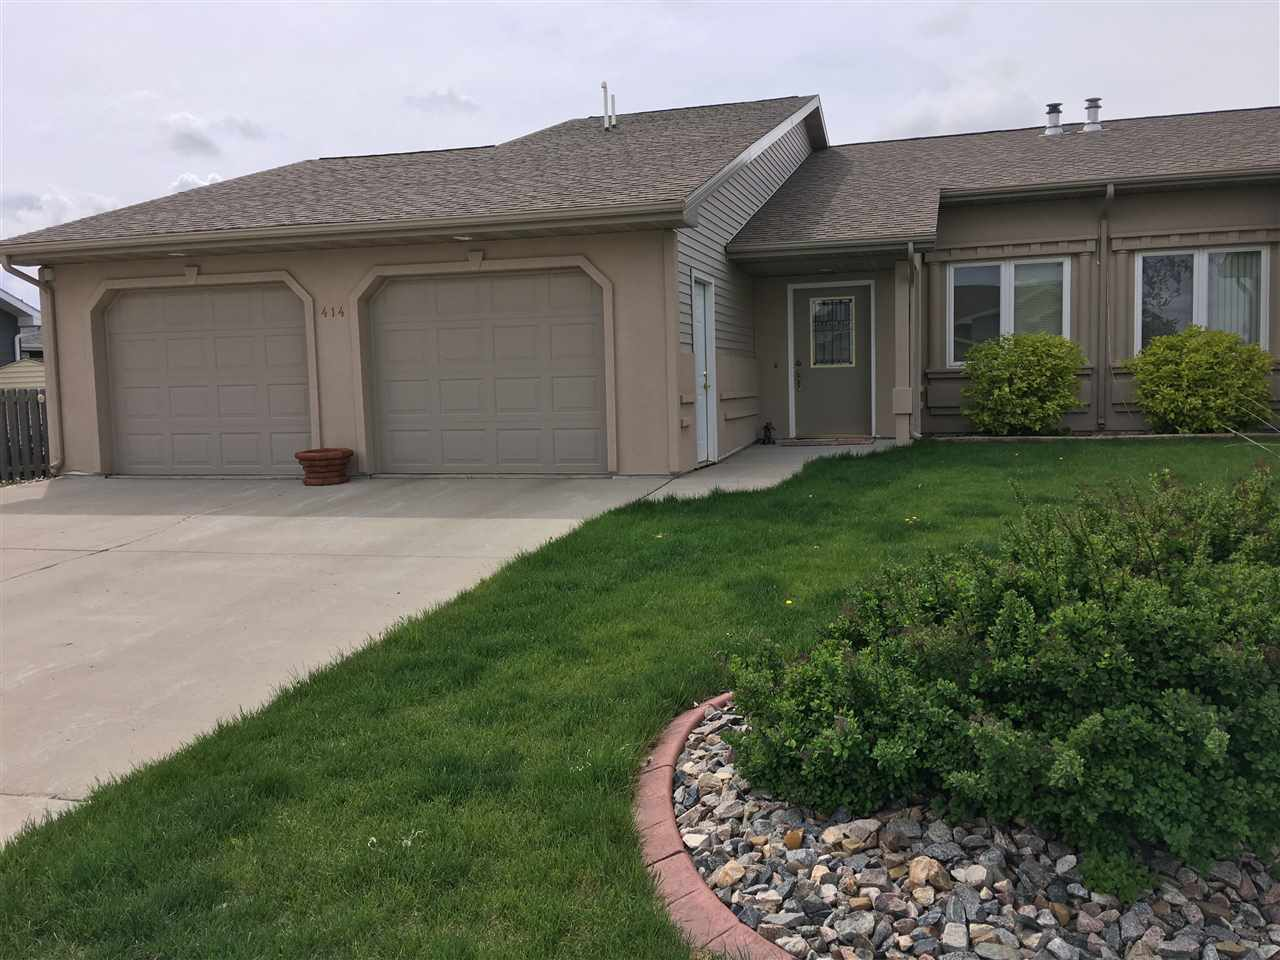 414 SW 4th Ave, Surrey, ND 58785